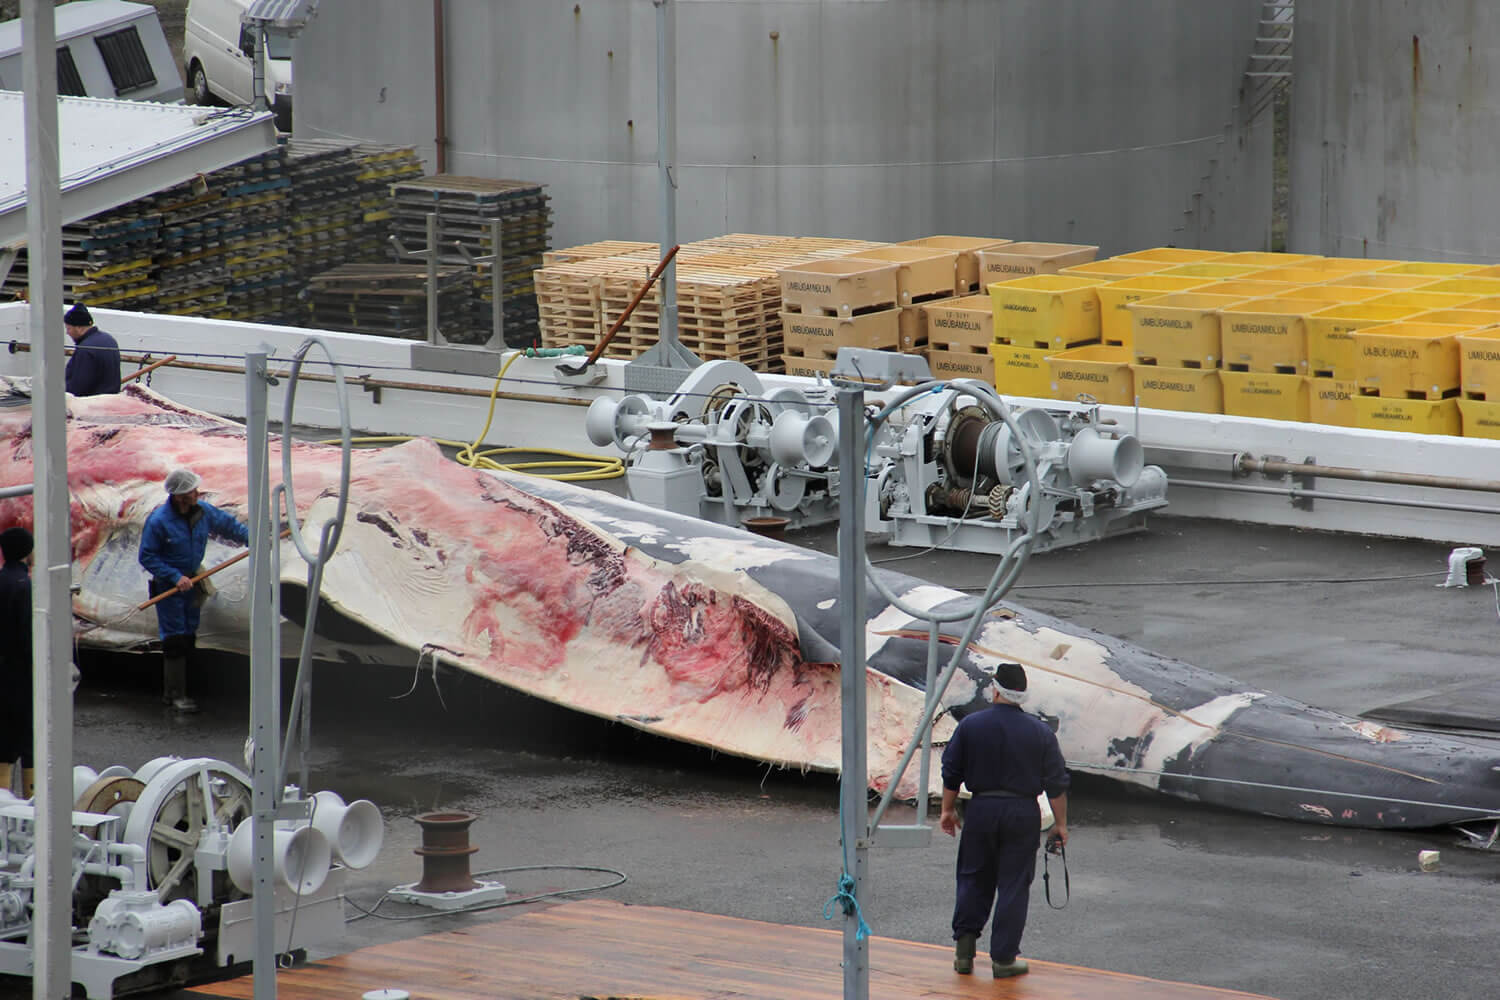 Iceland shipment to Japan could contain meat from rare hybrid whales